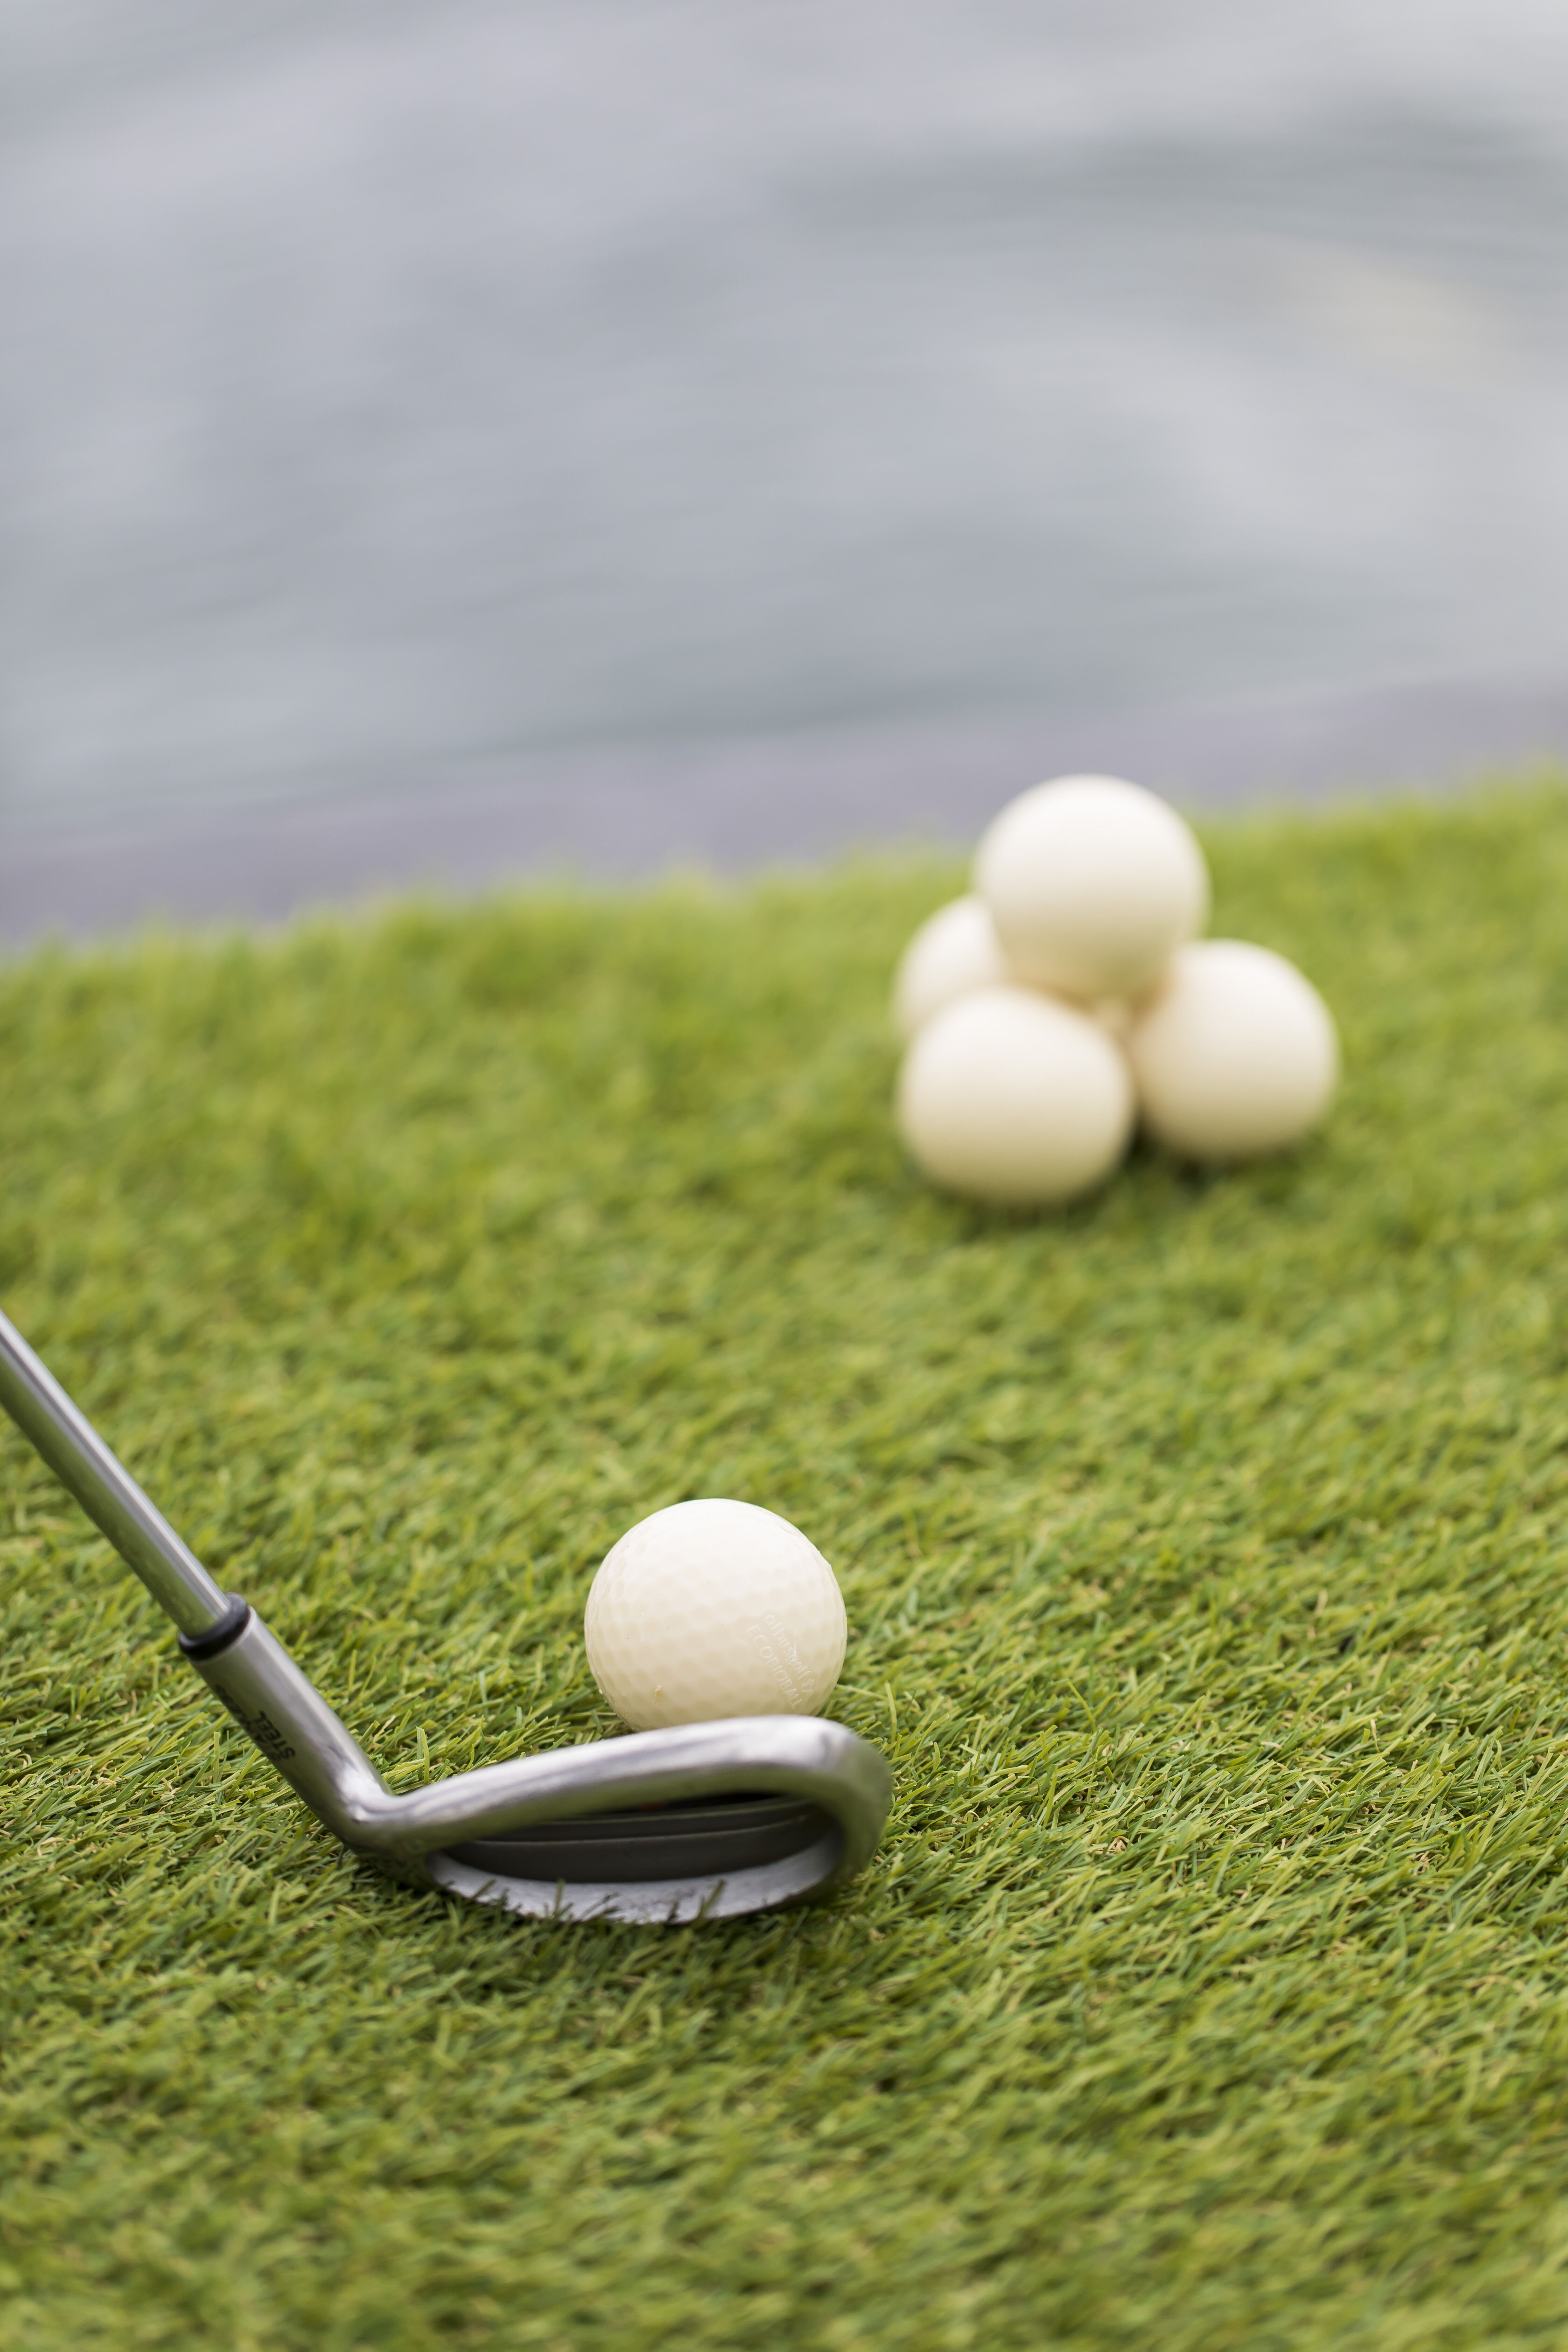 The golf balls used at Pier One Sydney Harbour are completely bio-degradable and full of fish food.